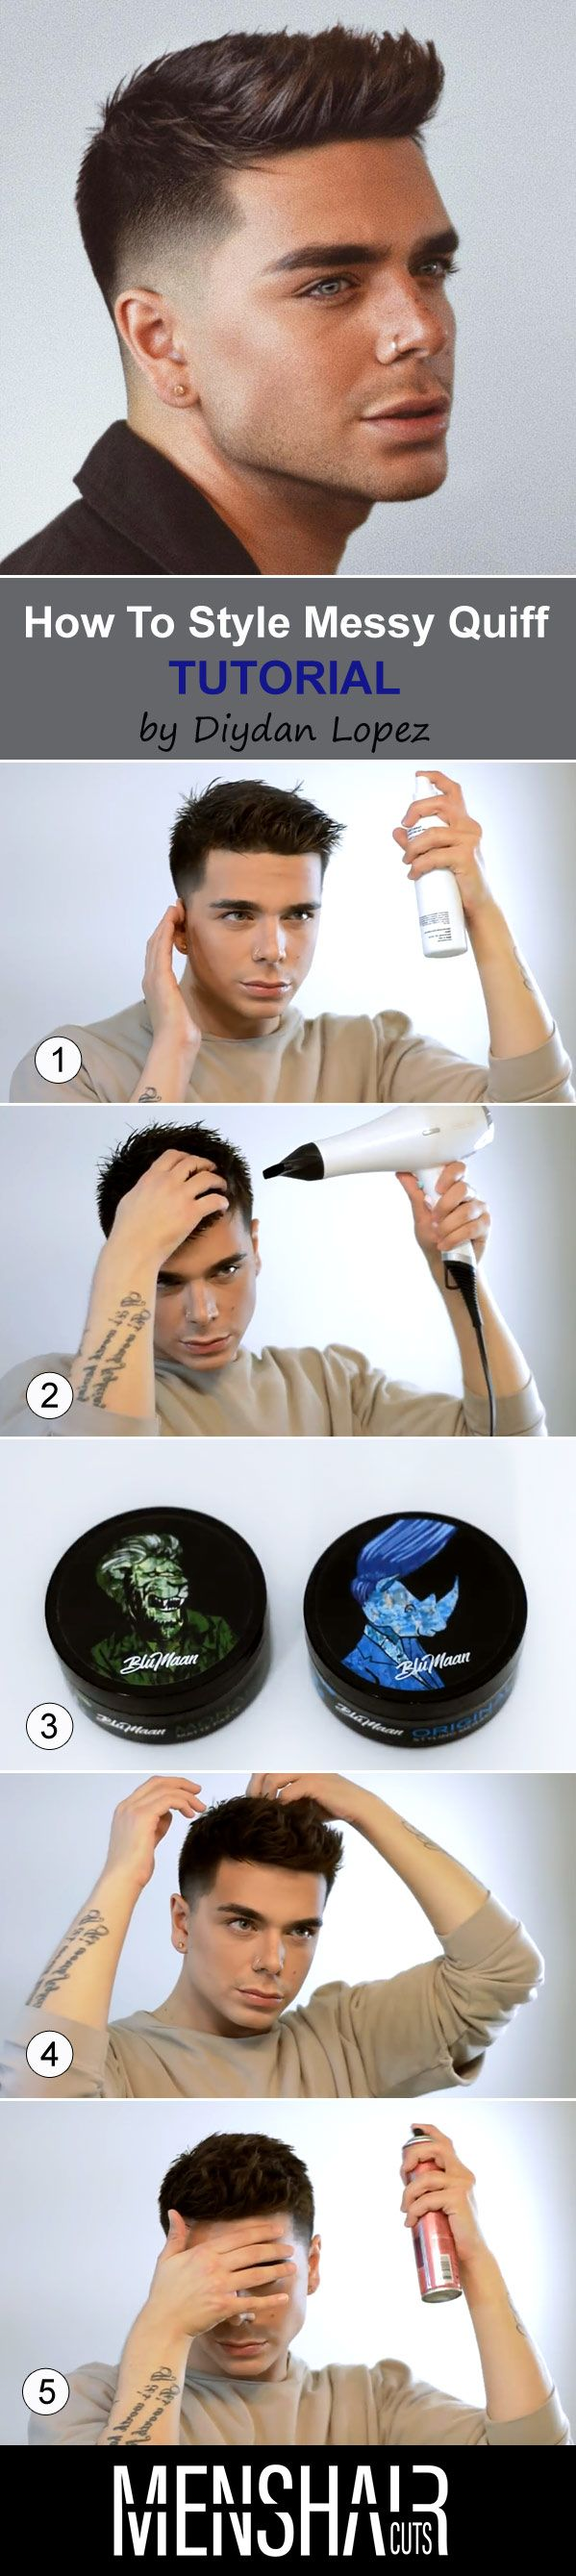 Quiff Hairstyle Ideas A Comprehensive Guide